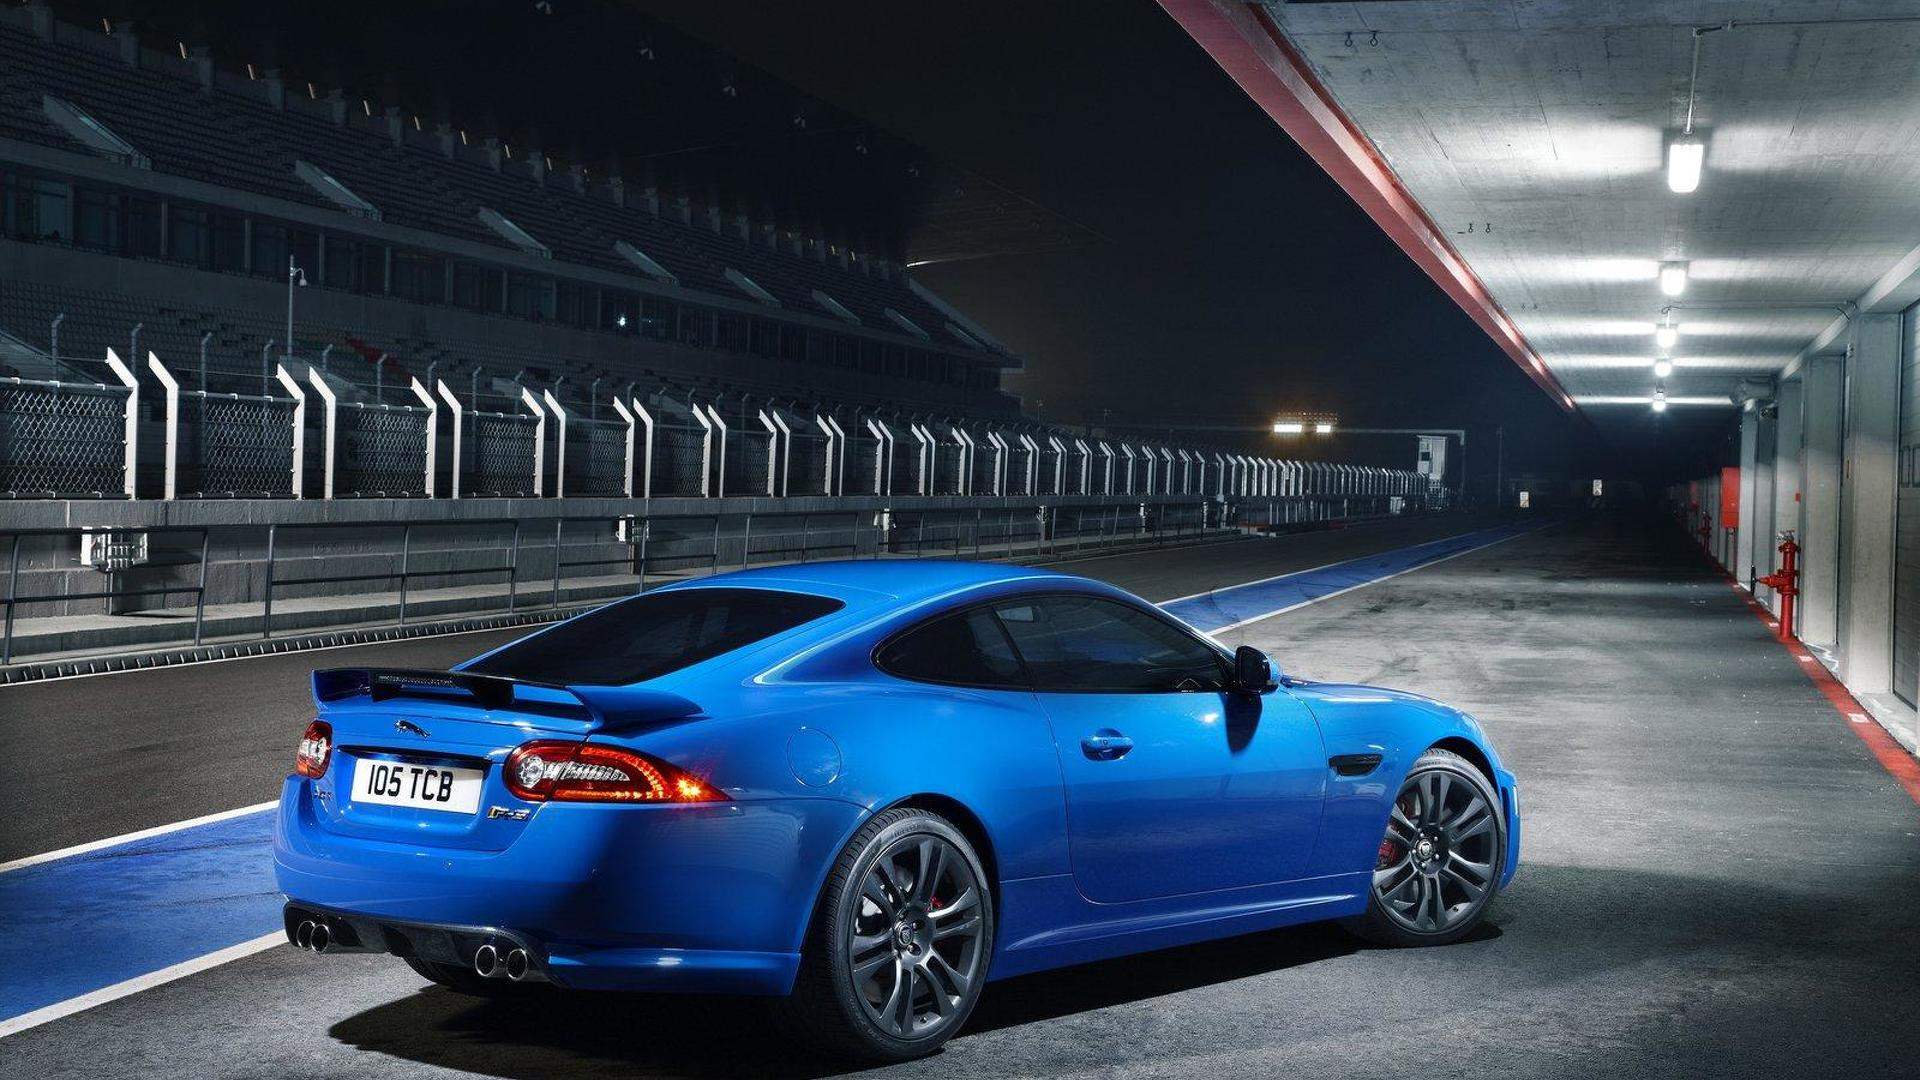 Jaguar to offer additional RS variants - report